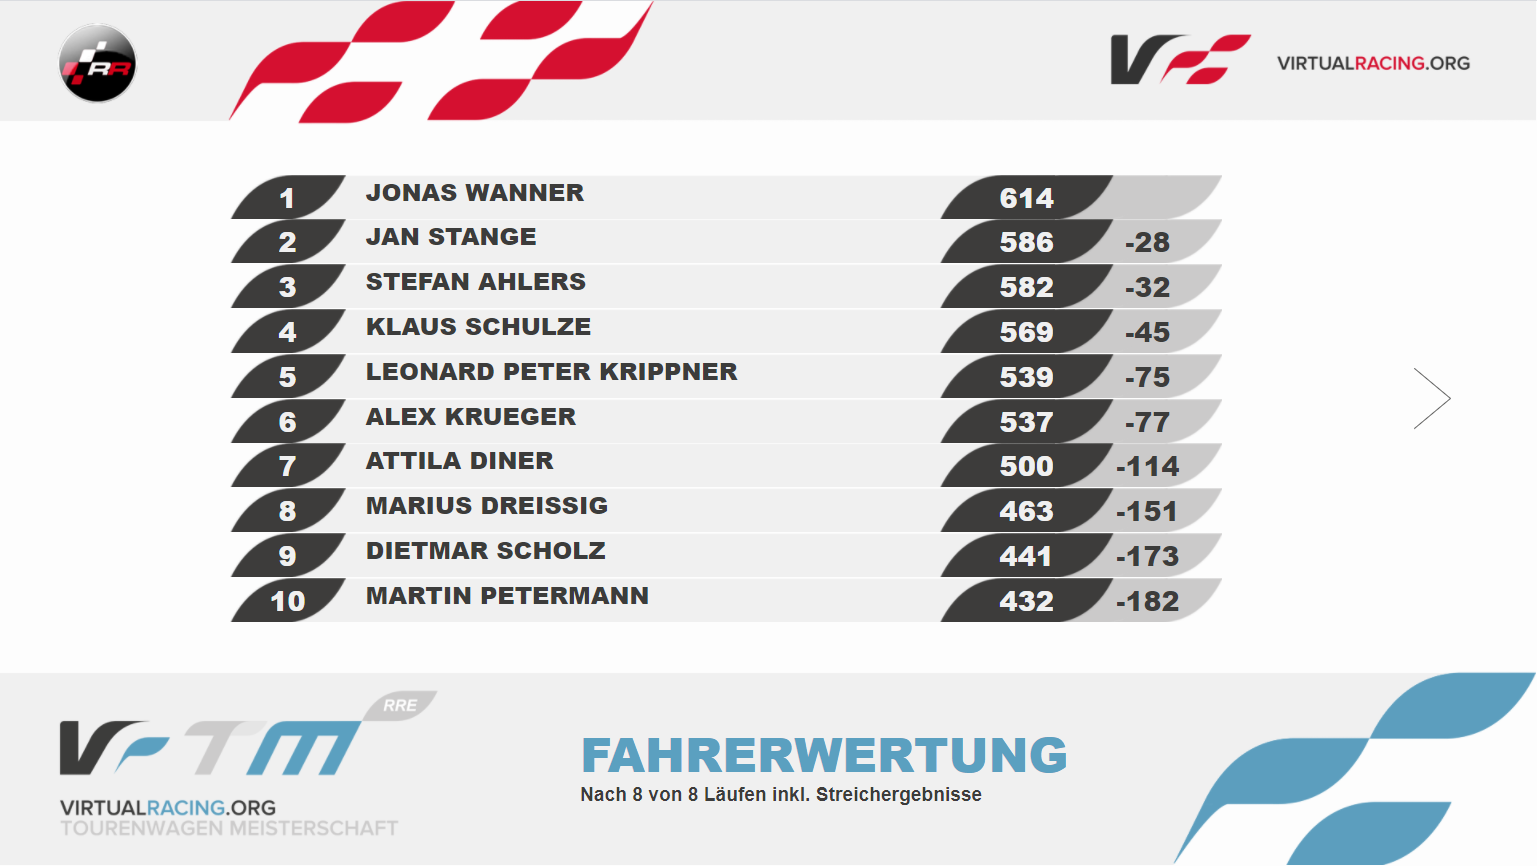 driver%20ranking%20s10.PNG